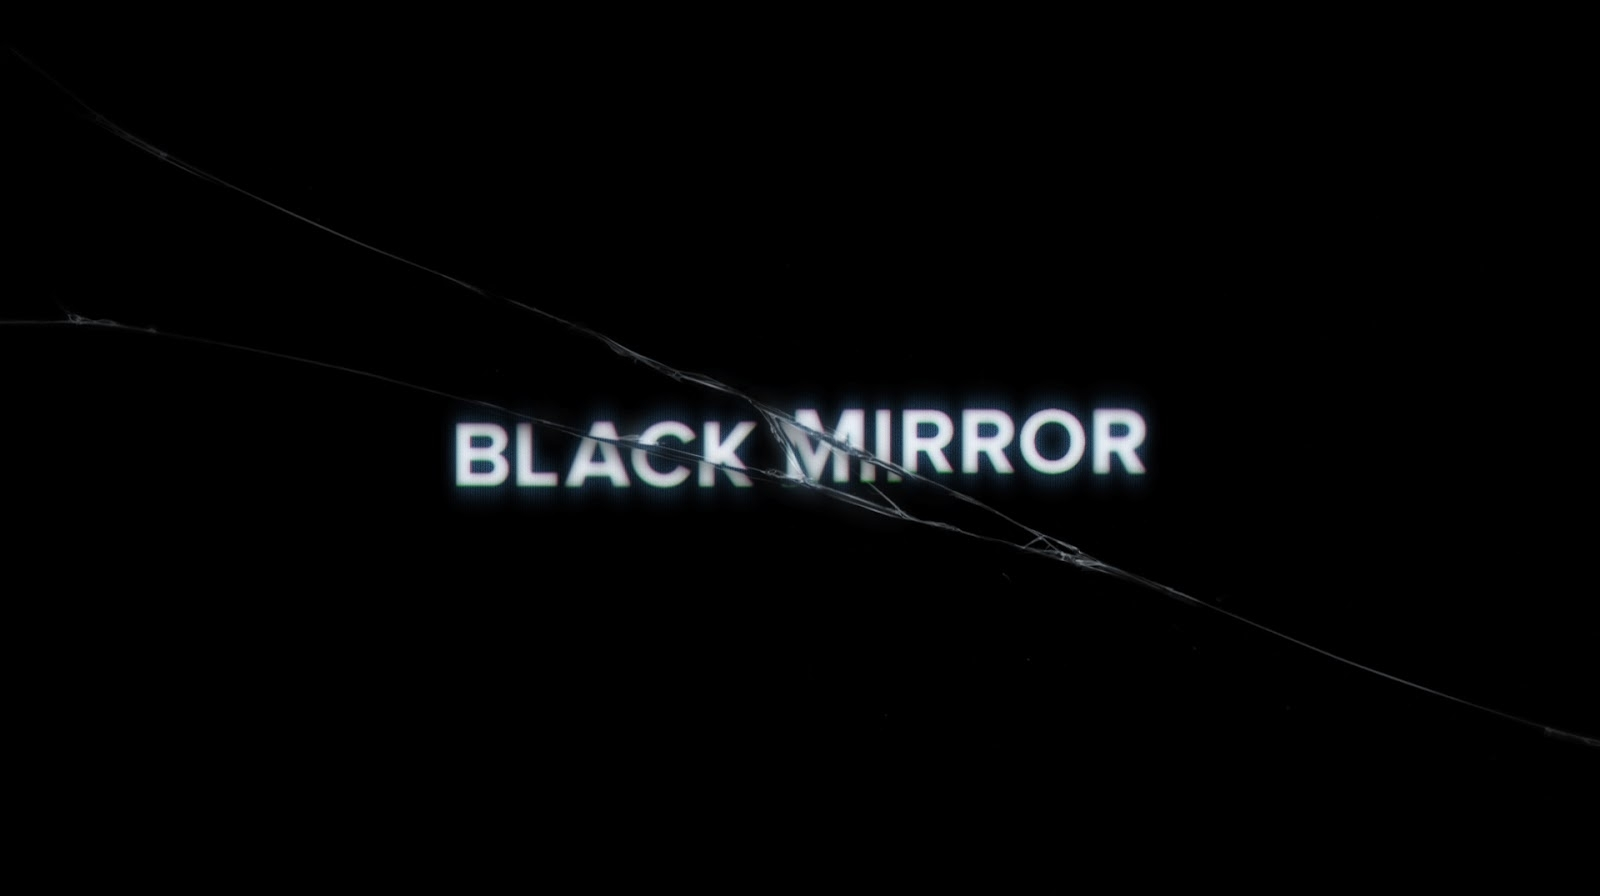 Watch the Trailer for Black Mirror's Upcoming Star Trek-ish Episode